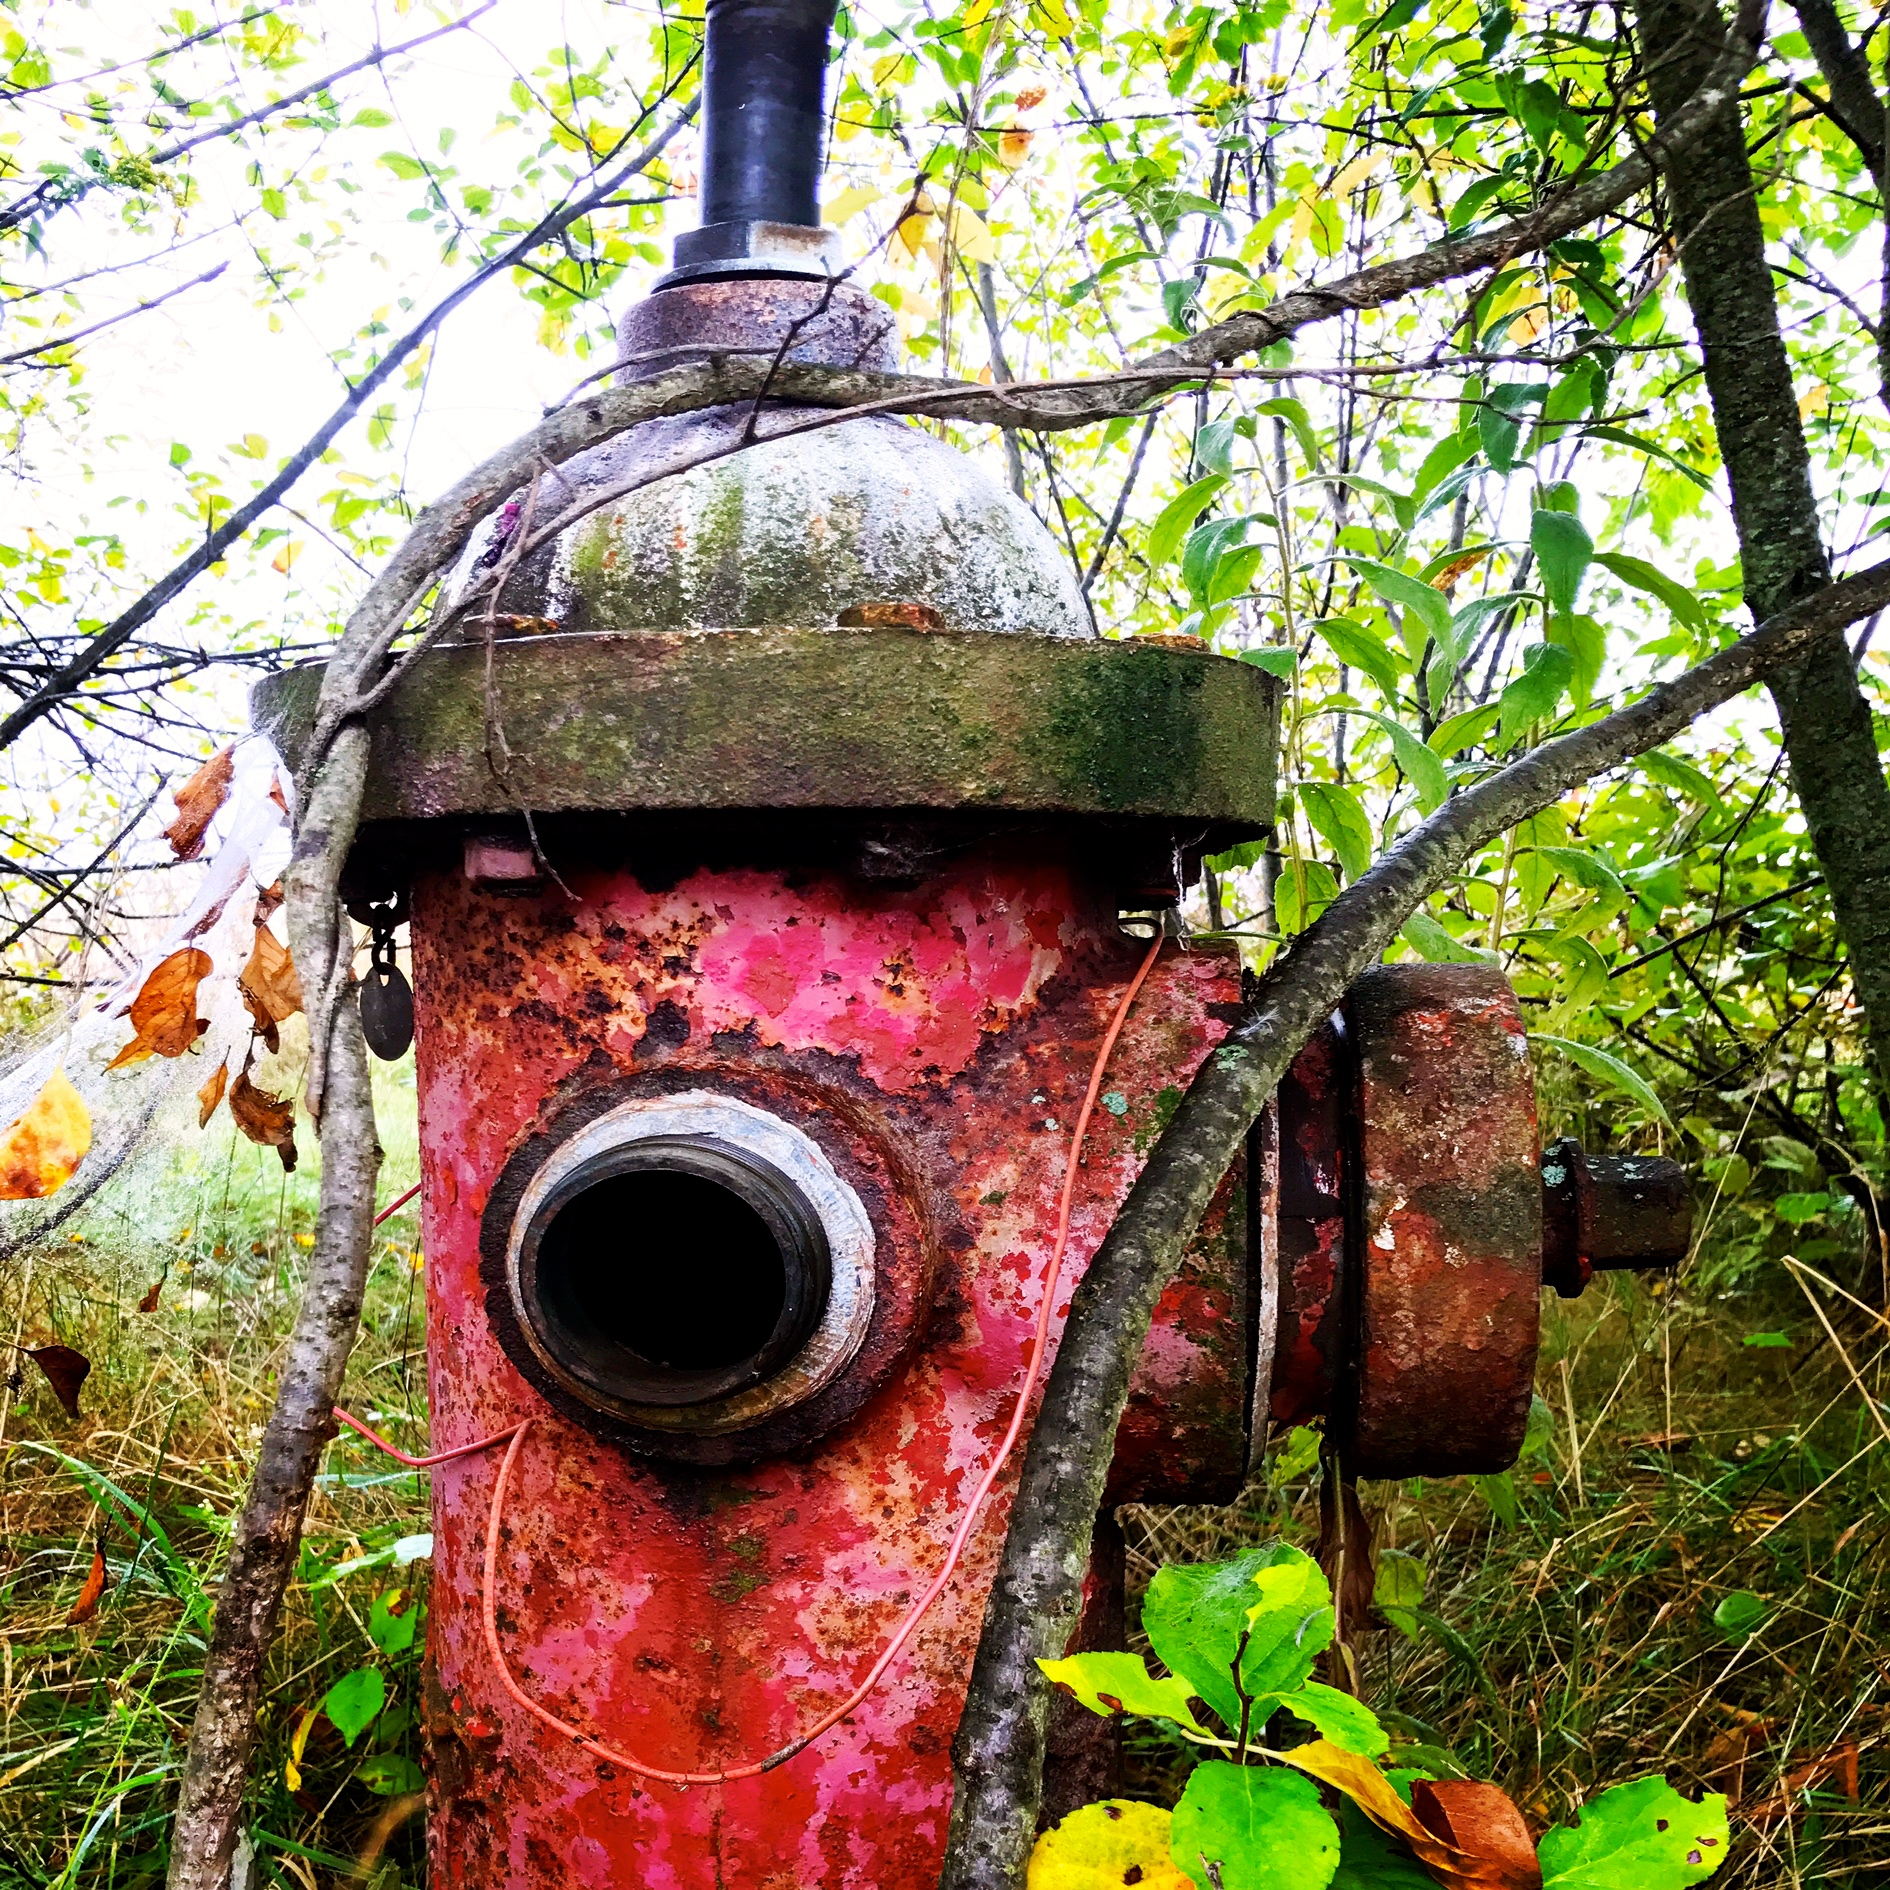 Fire Hydrant in the Meadow